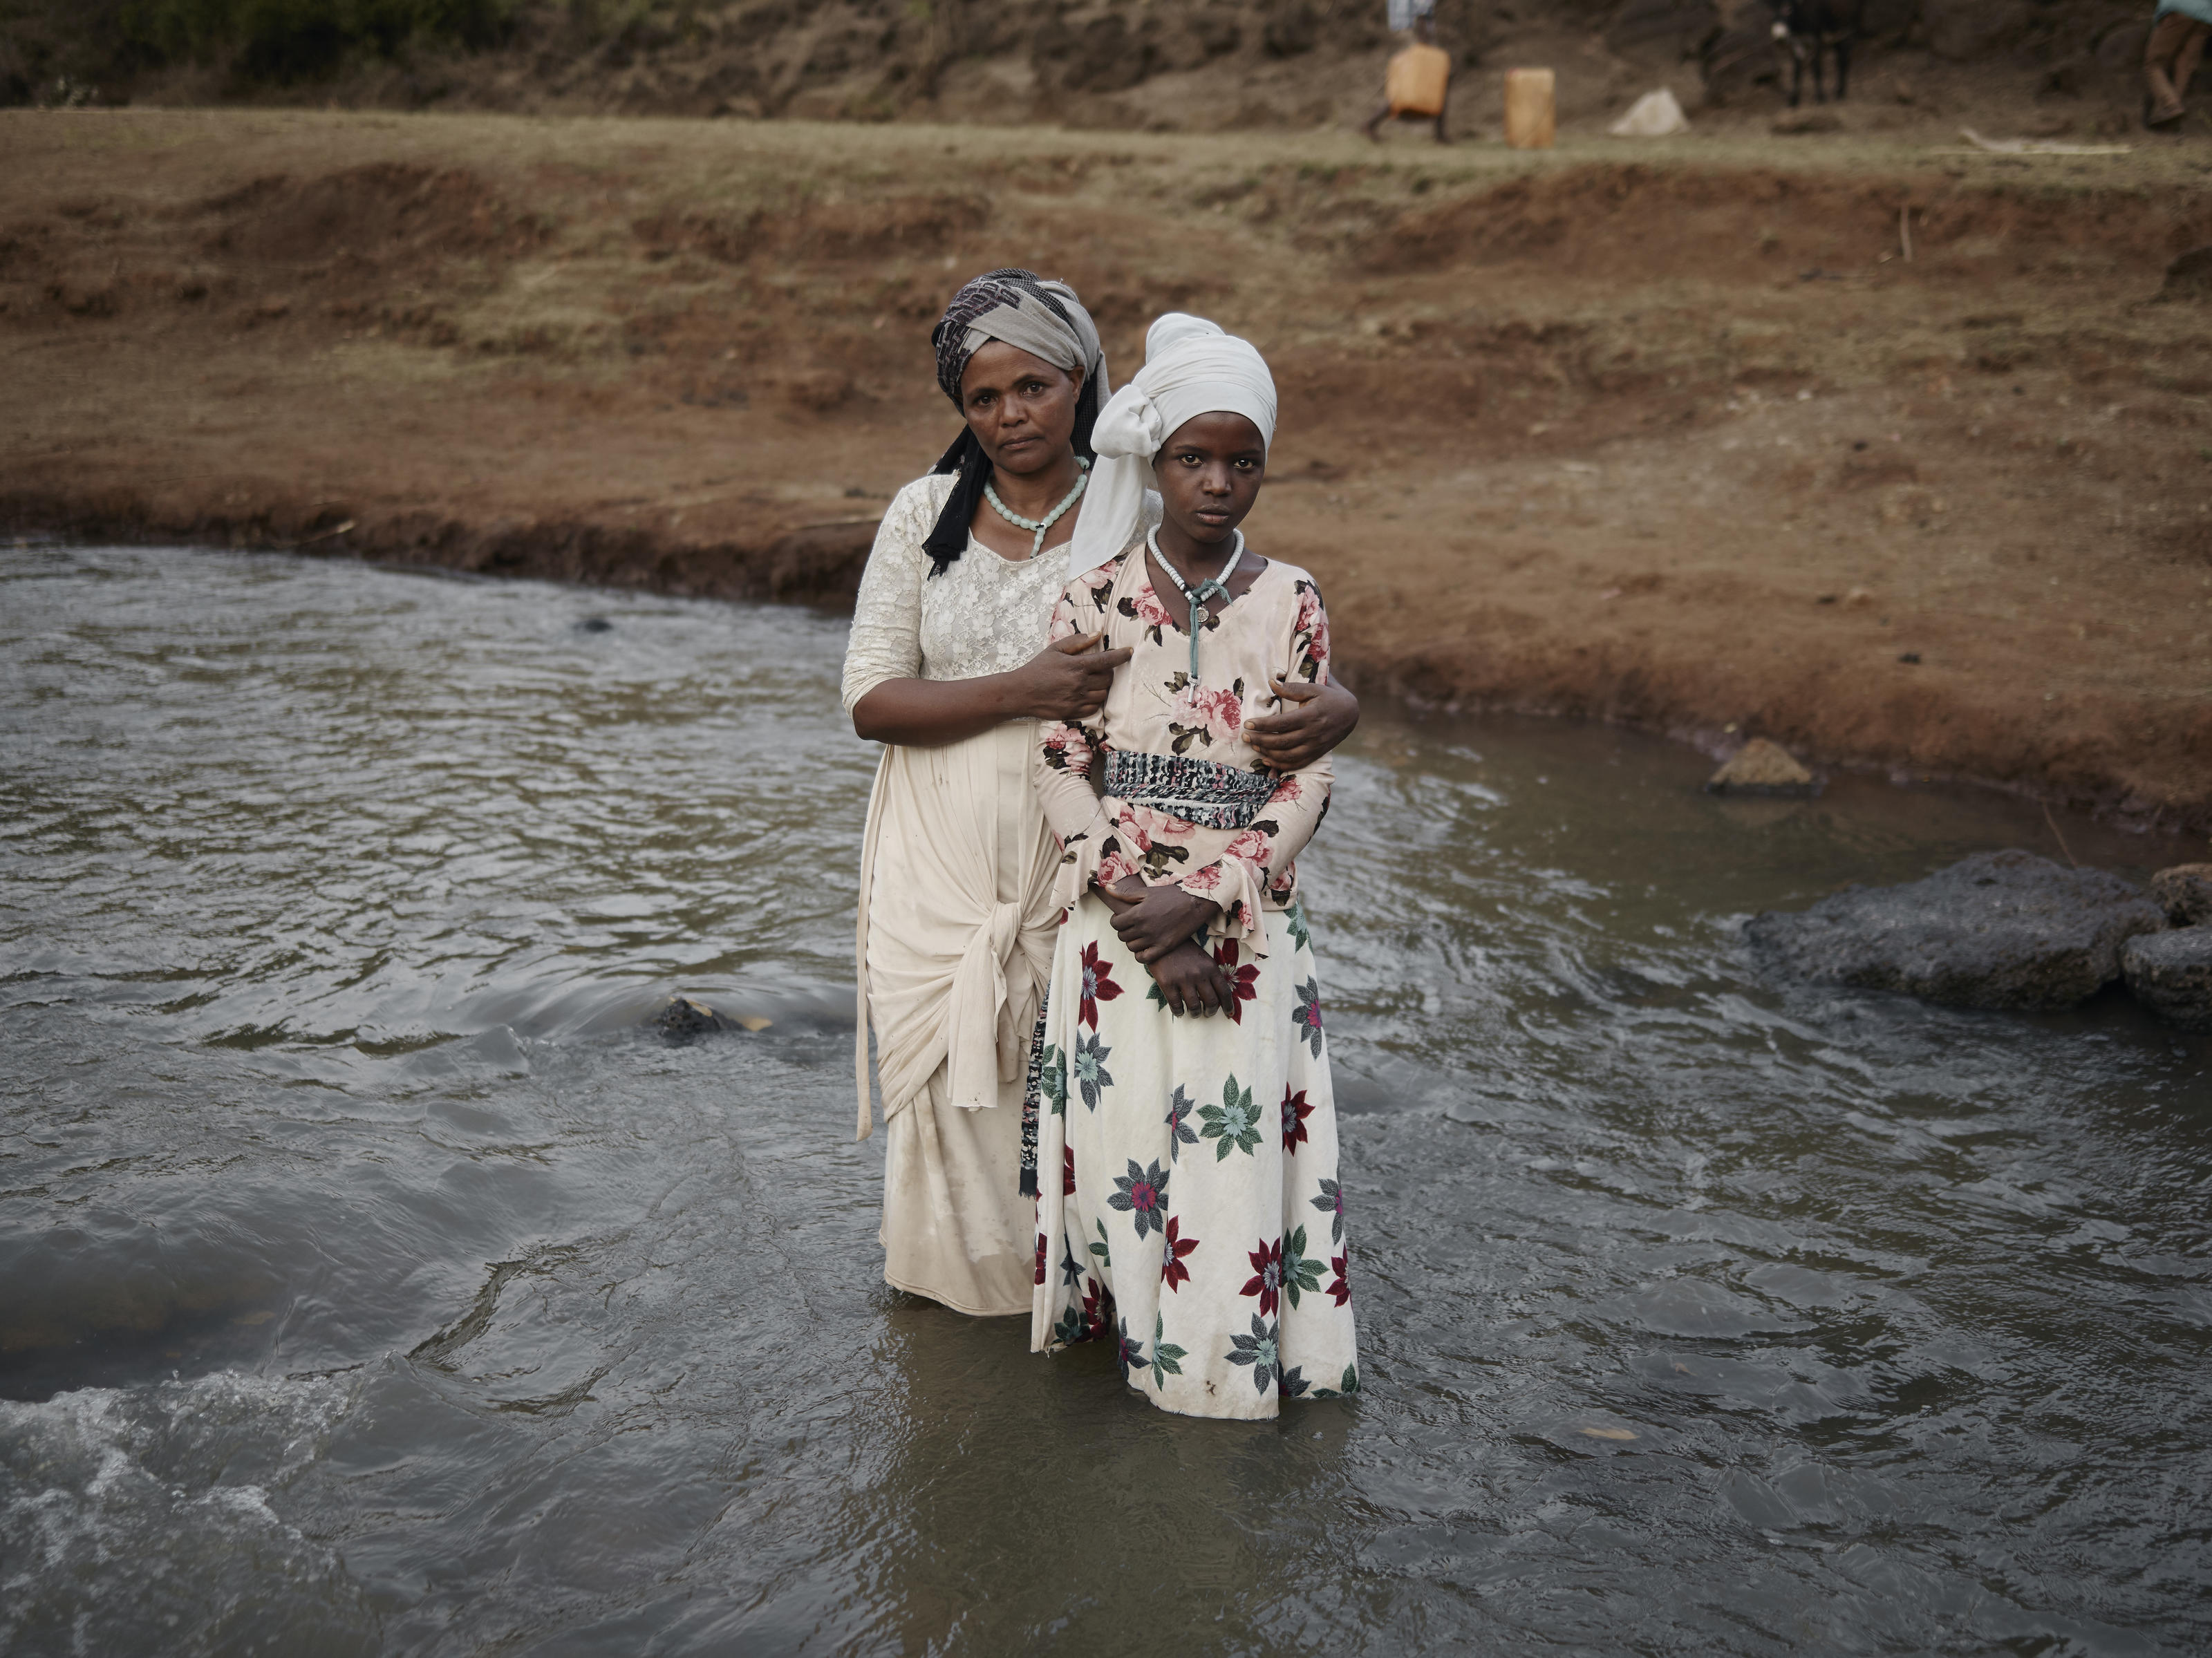 Hawa and her daughter Ansha standing in the River Lah in Frat